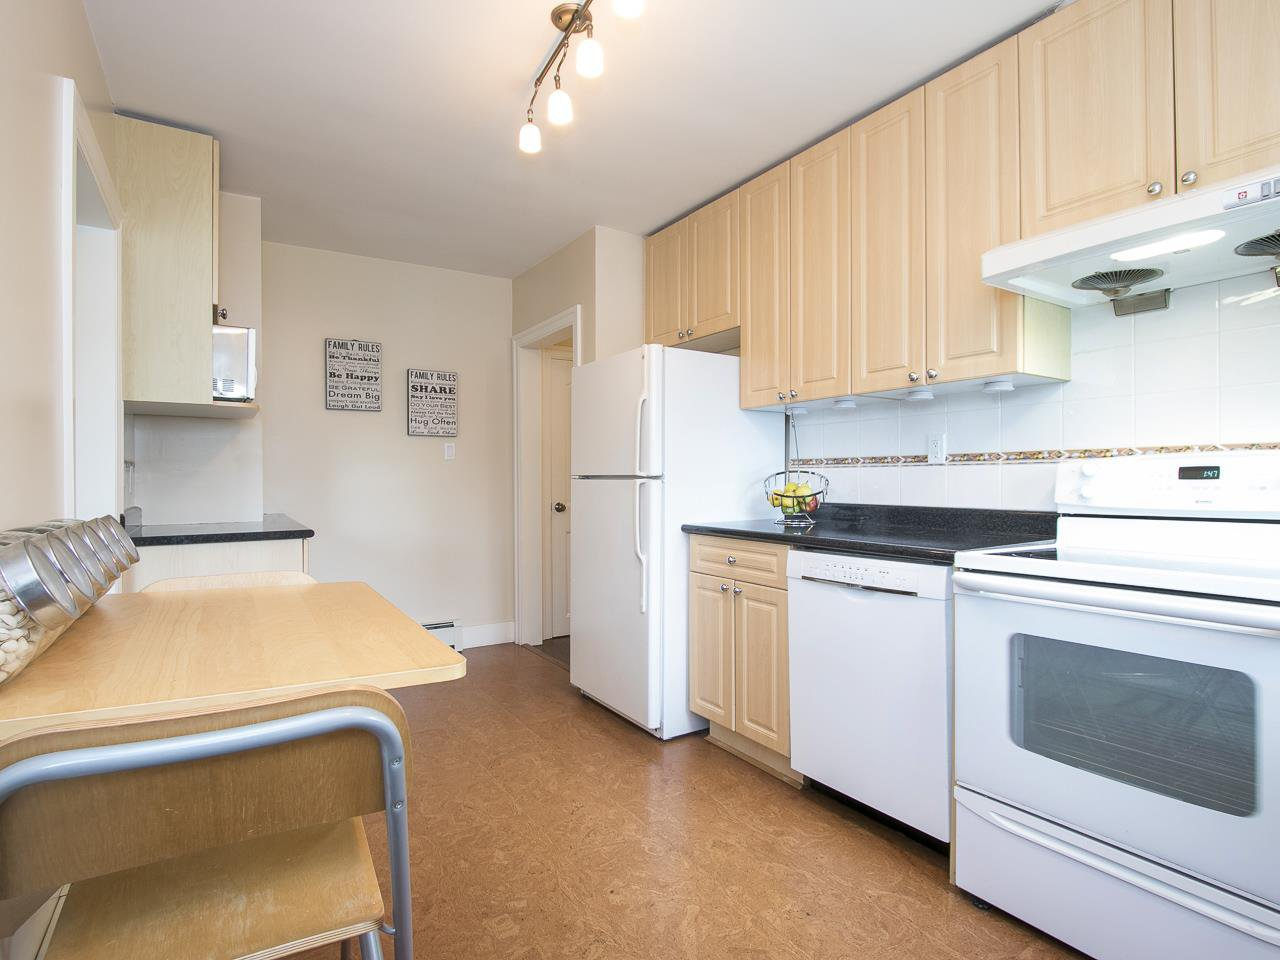 Photo 7: Photos: 731 W KING EDWARD AVENUE in Vancouver: Cambie House for sale (Vancouver West)  : MLS®# R2204992